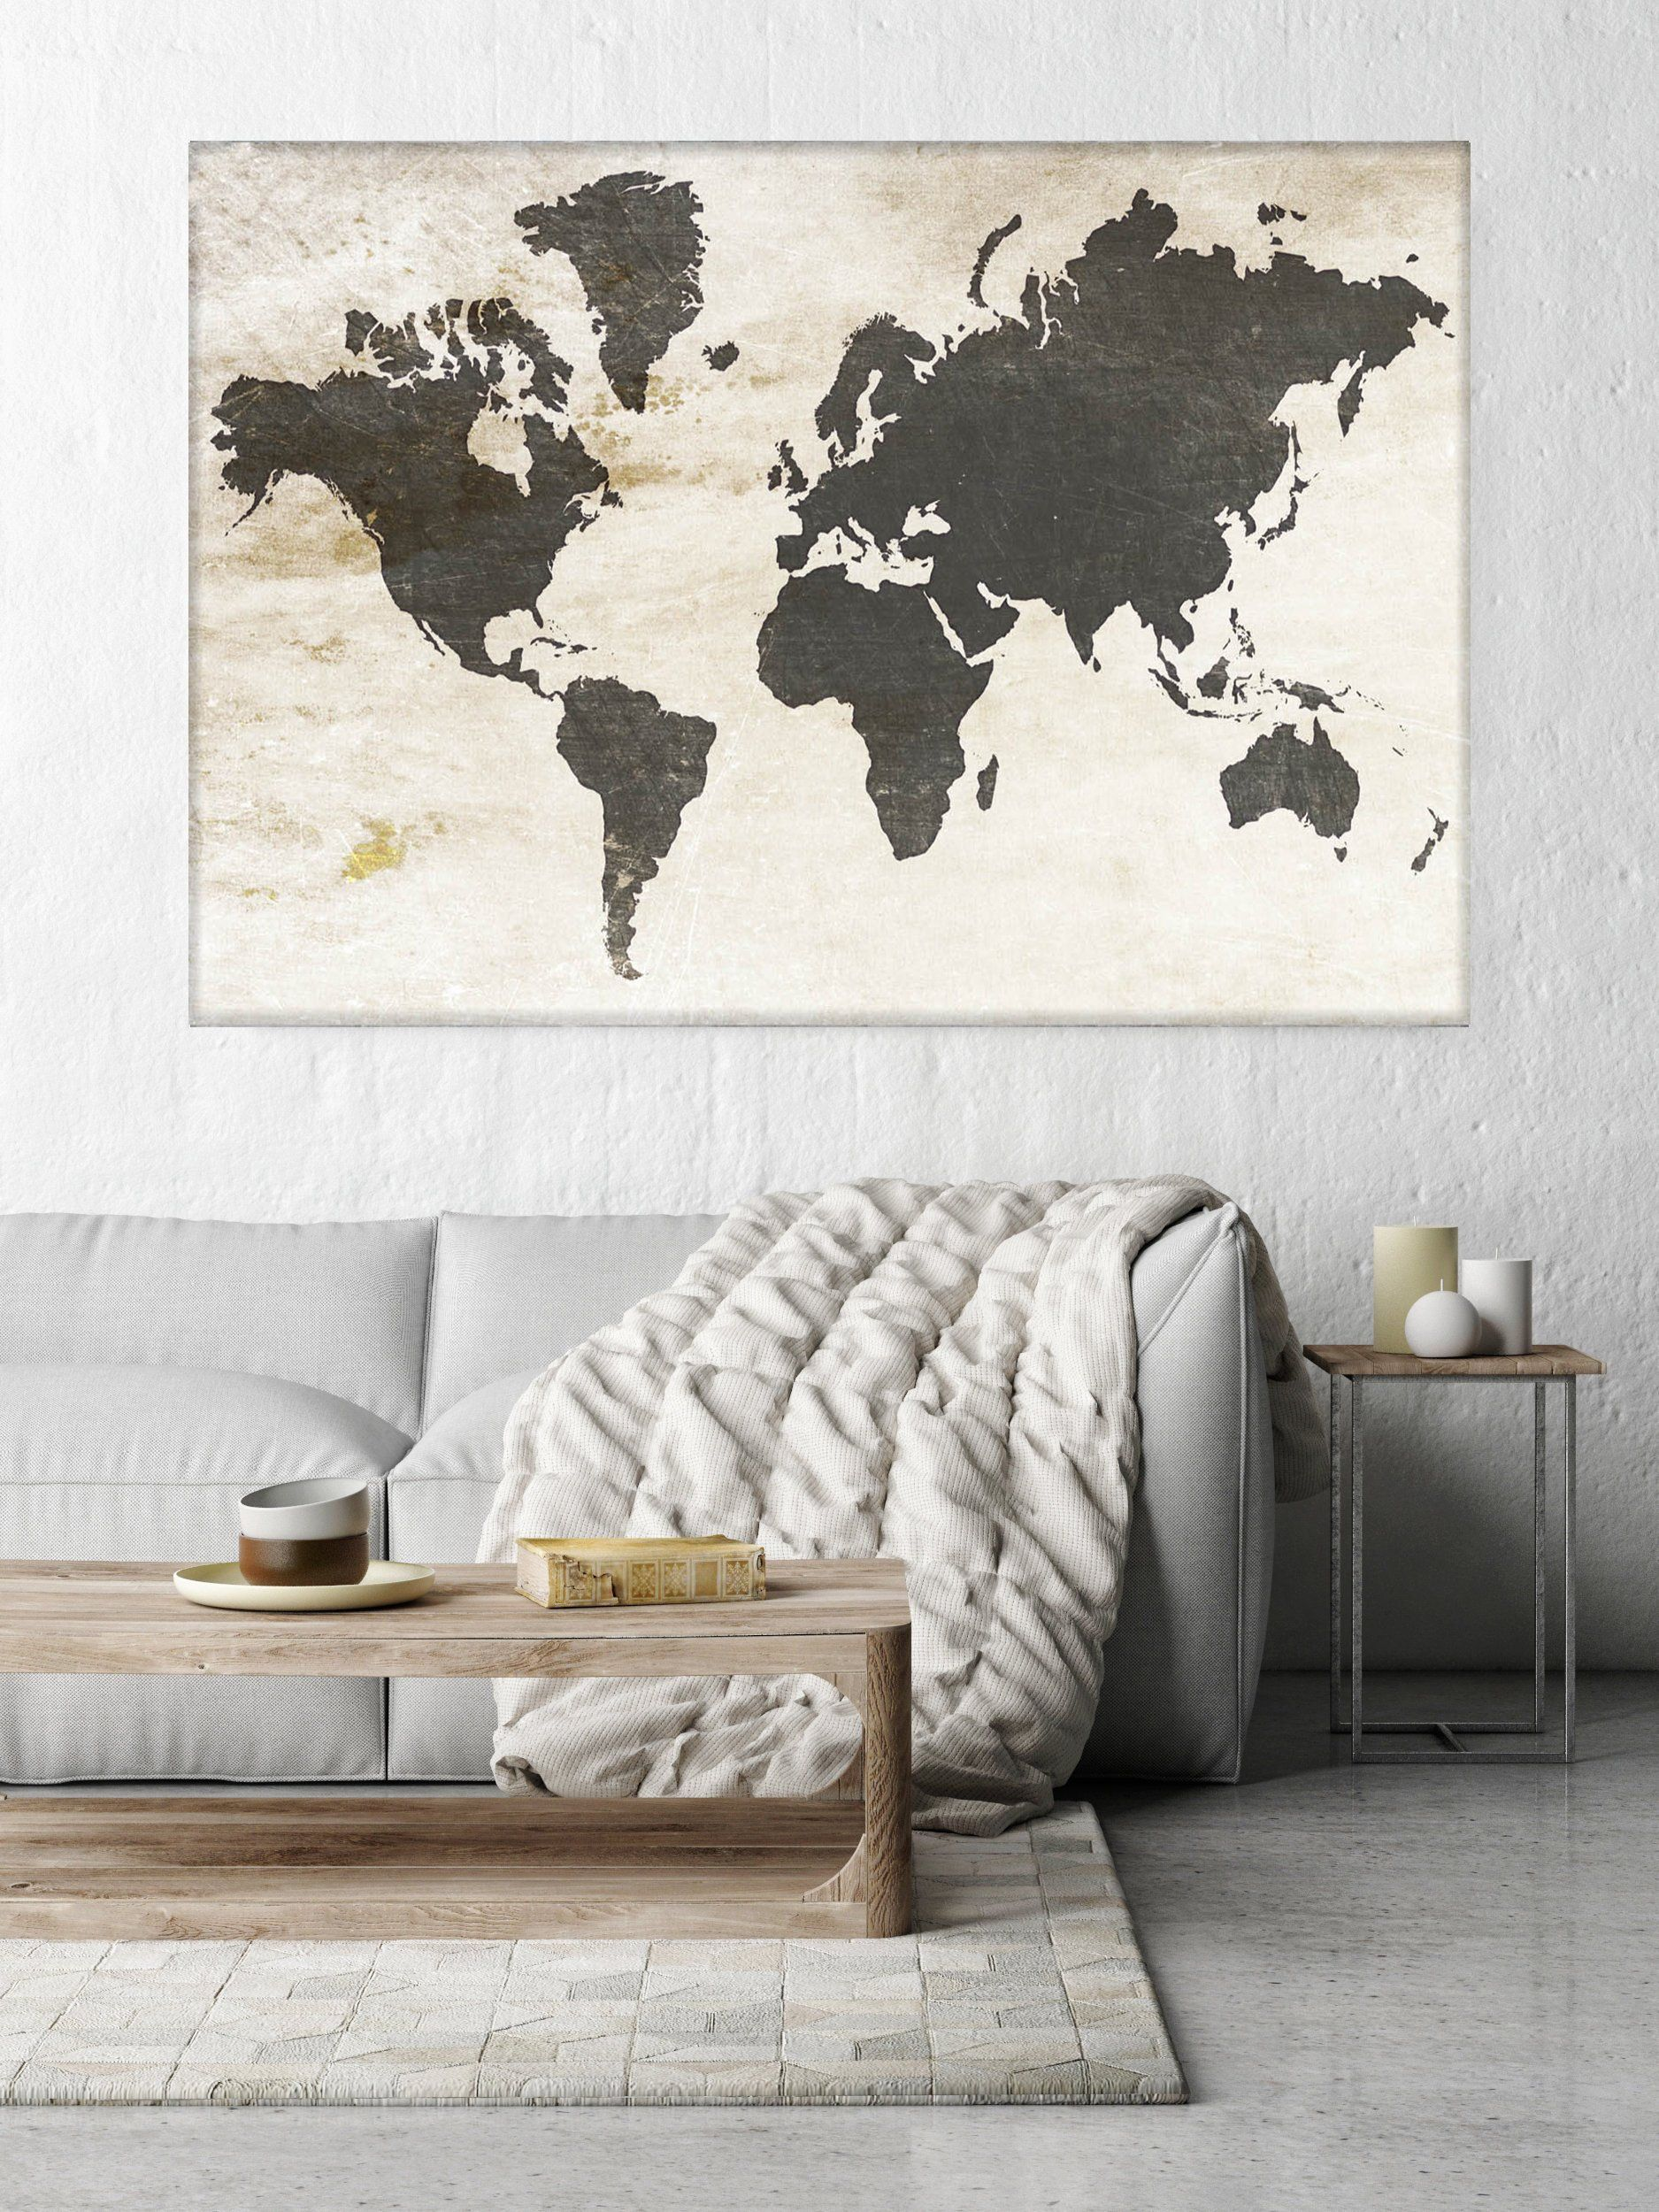 Huge world map executive gift rustic map industrial art